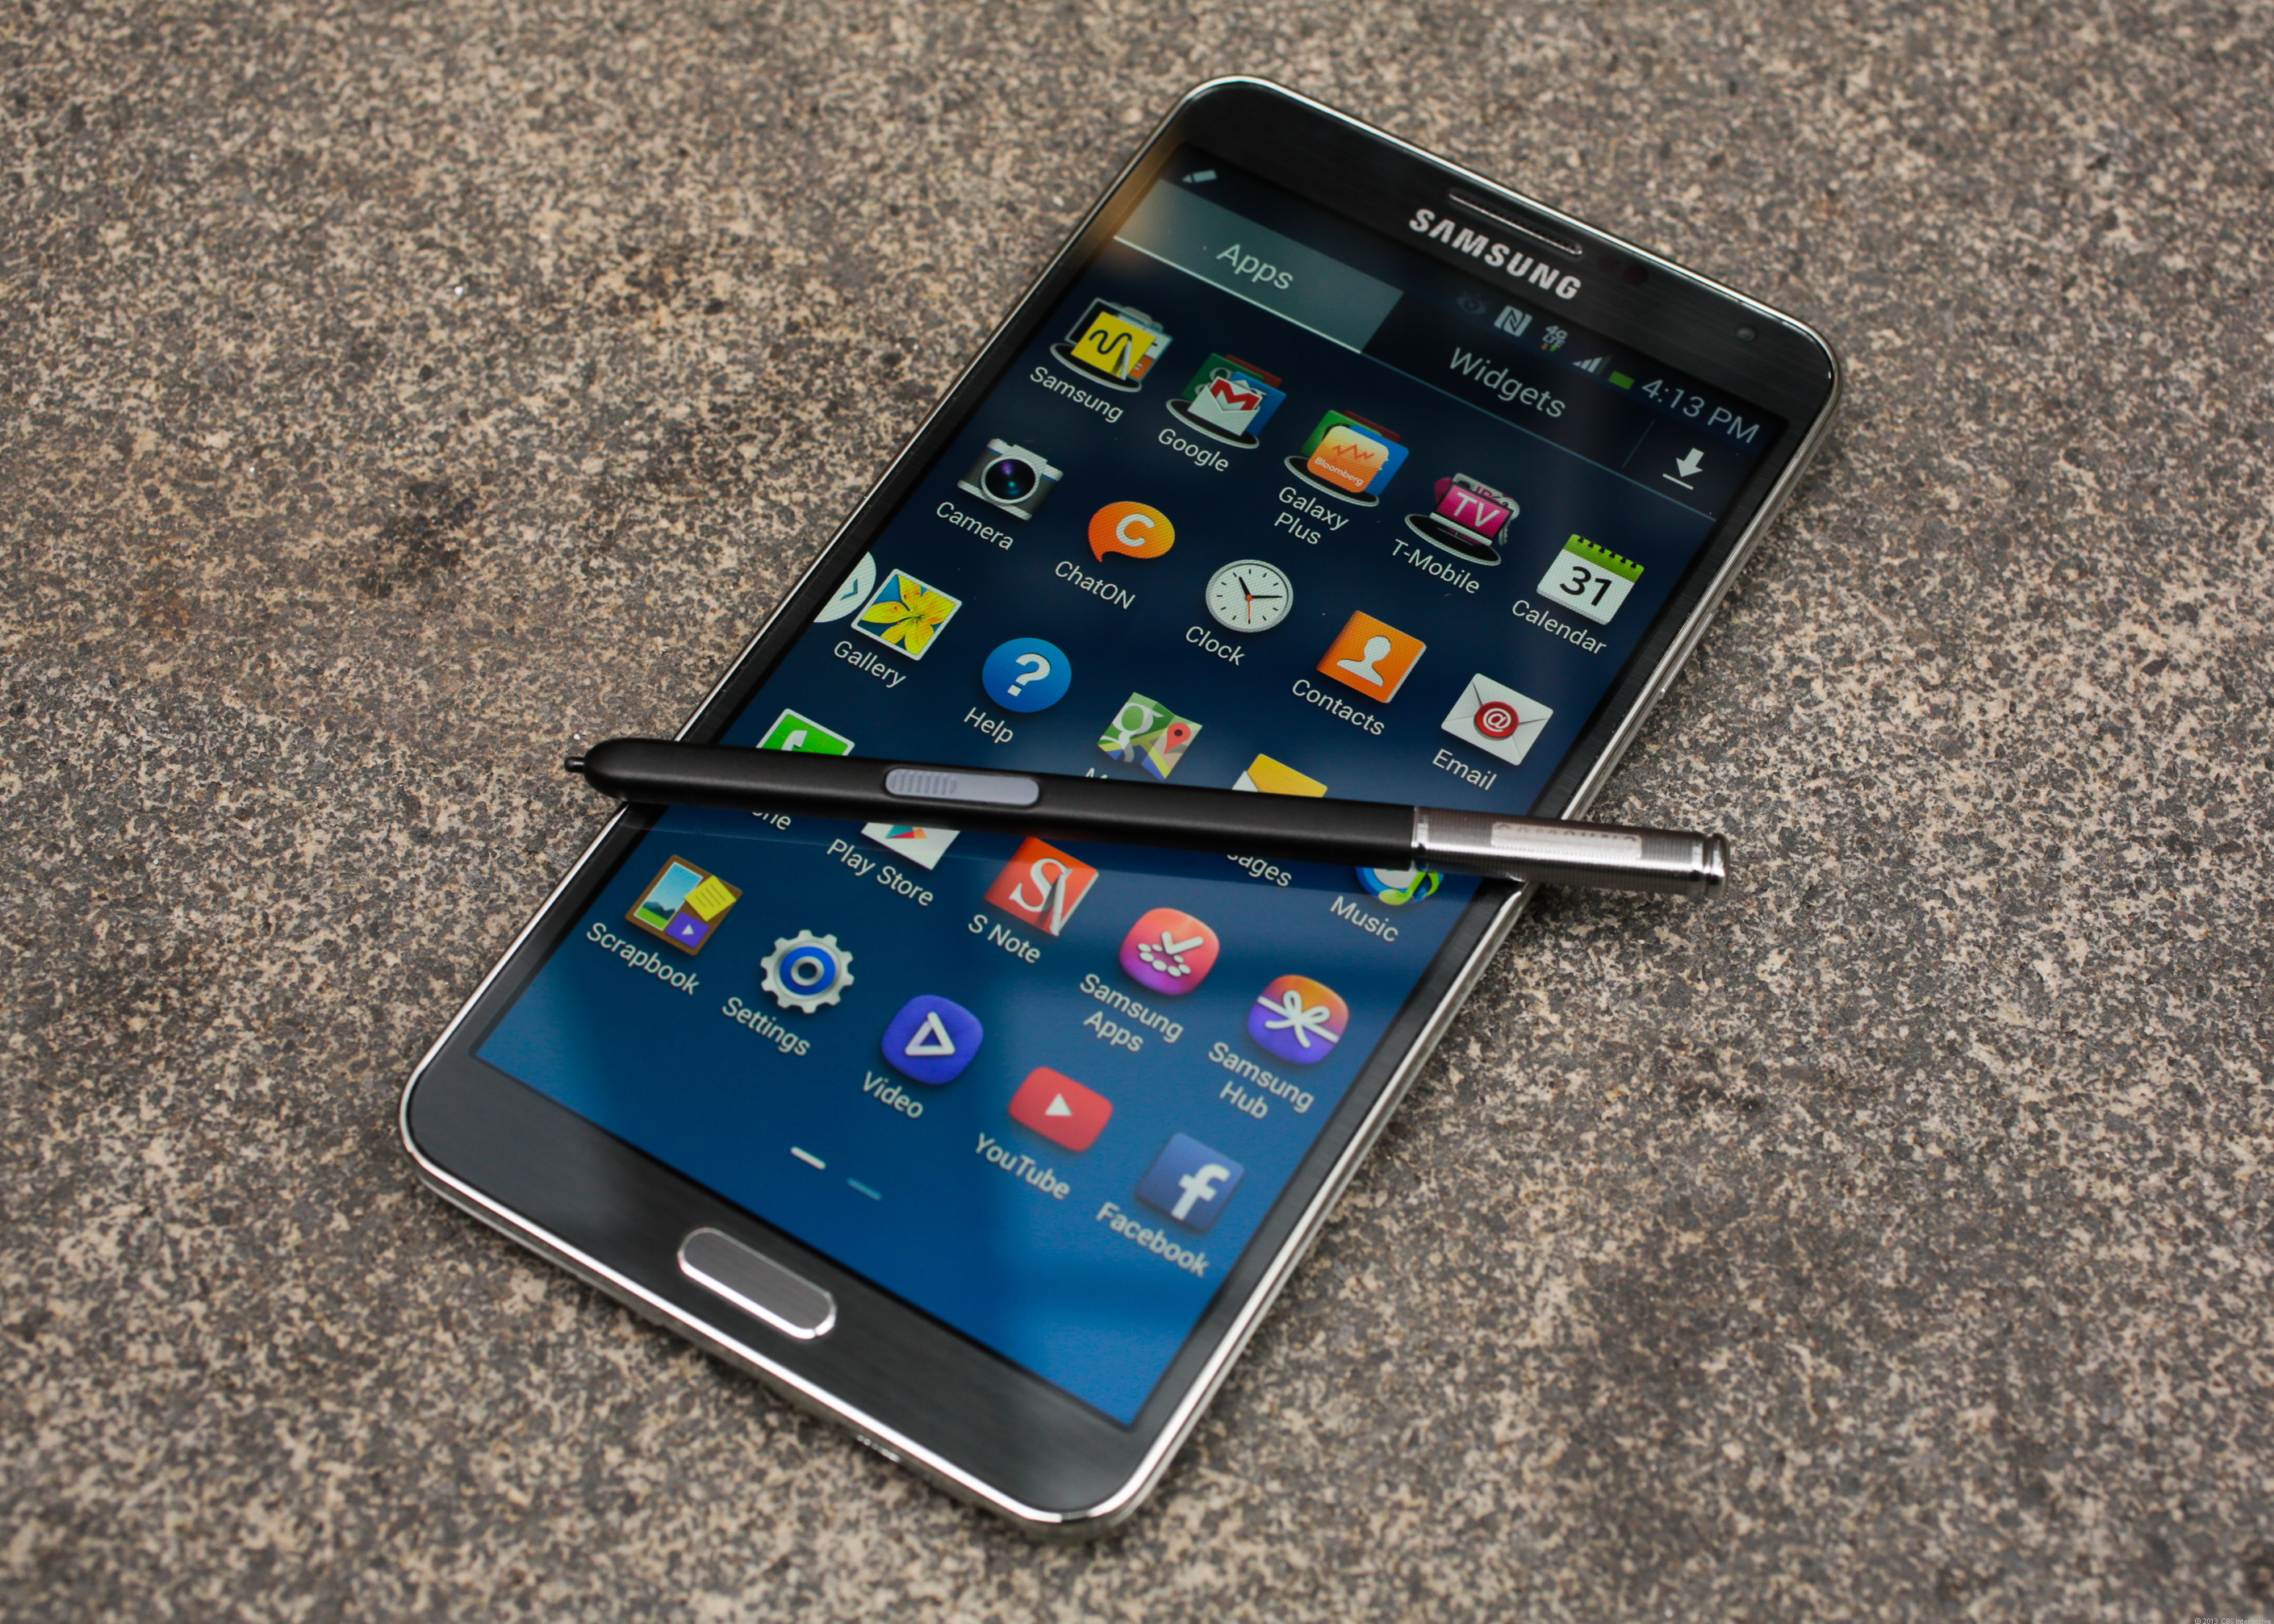 samsung galaxy note 3 review cnet. Black Bedroom Furniture Sets. Home Design Ideas